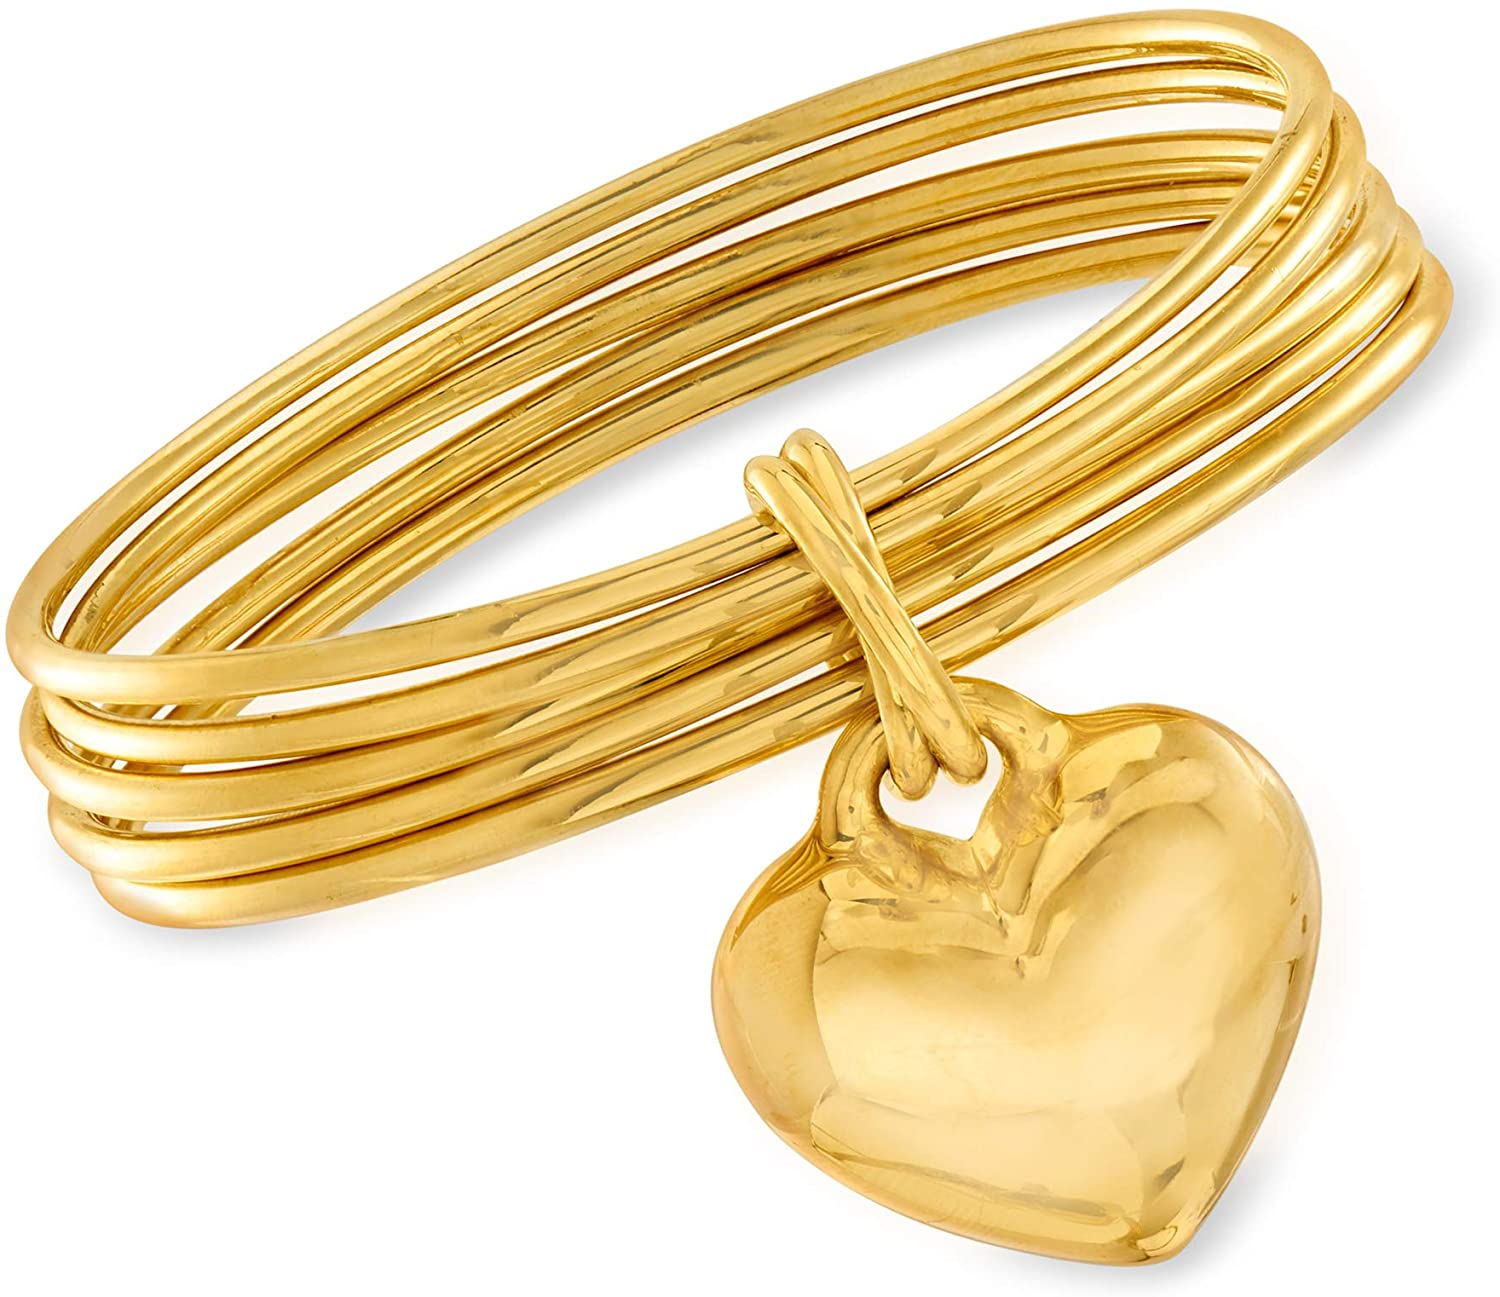 Ross-Simons Italian Andiamo 14kt Yellow Gold Heart Charm Multi-Bangle Bracelet